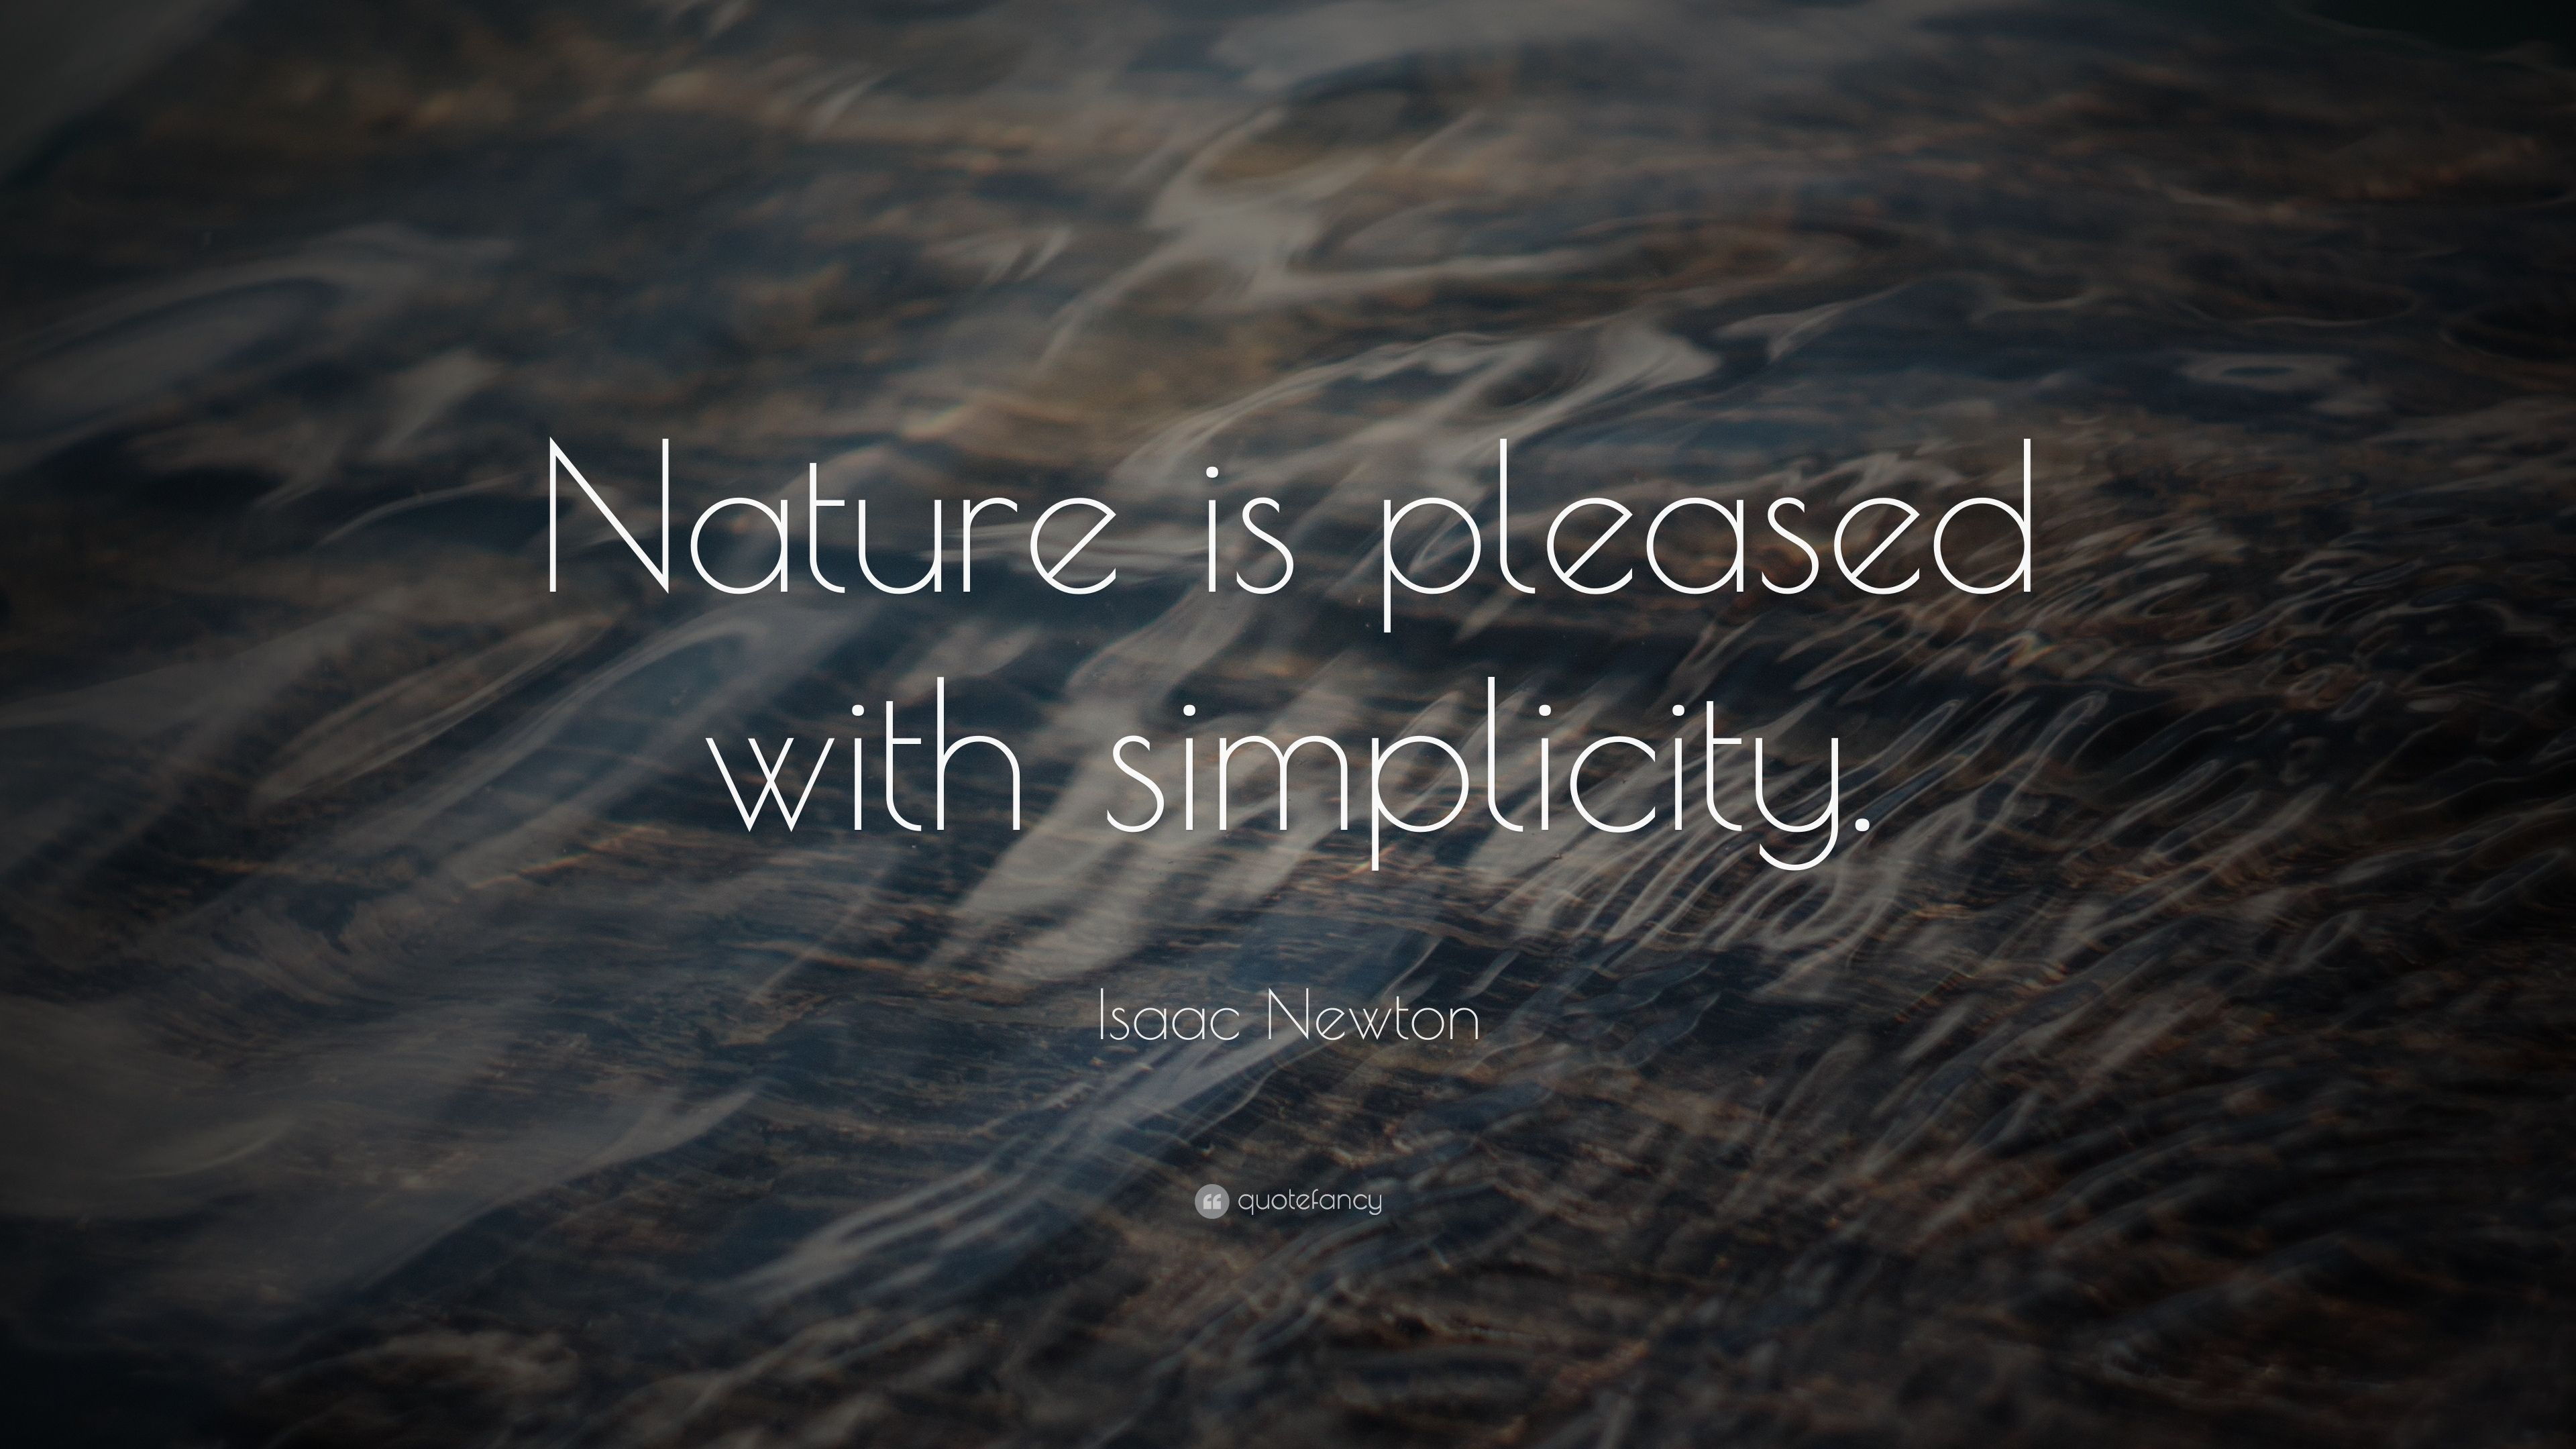 Nature quotes yahoo image search results rnc - Inspirational nature wallpapers ...